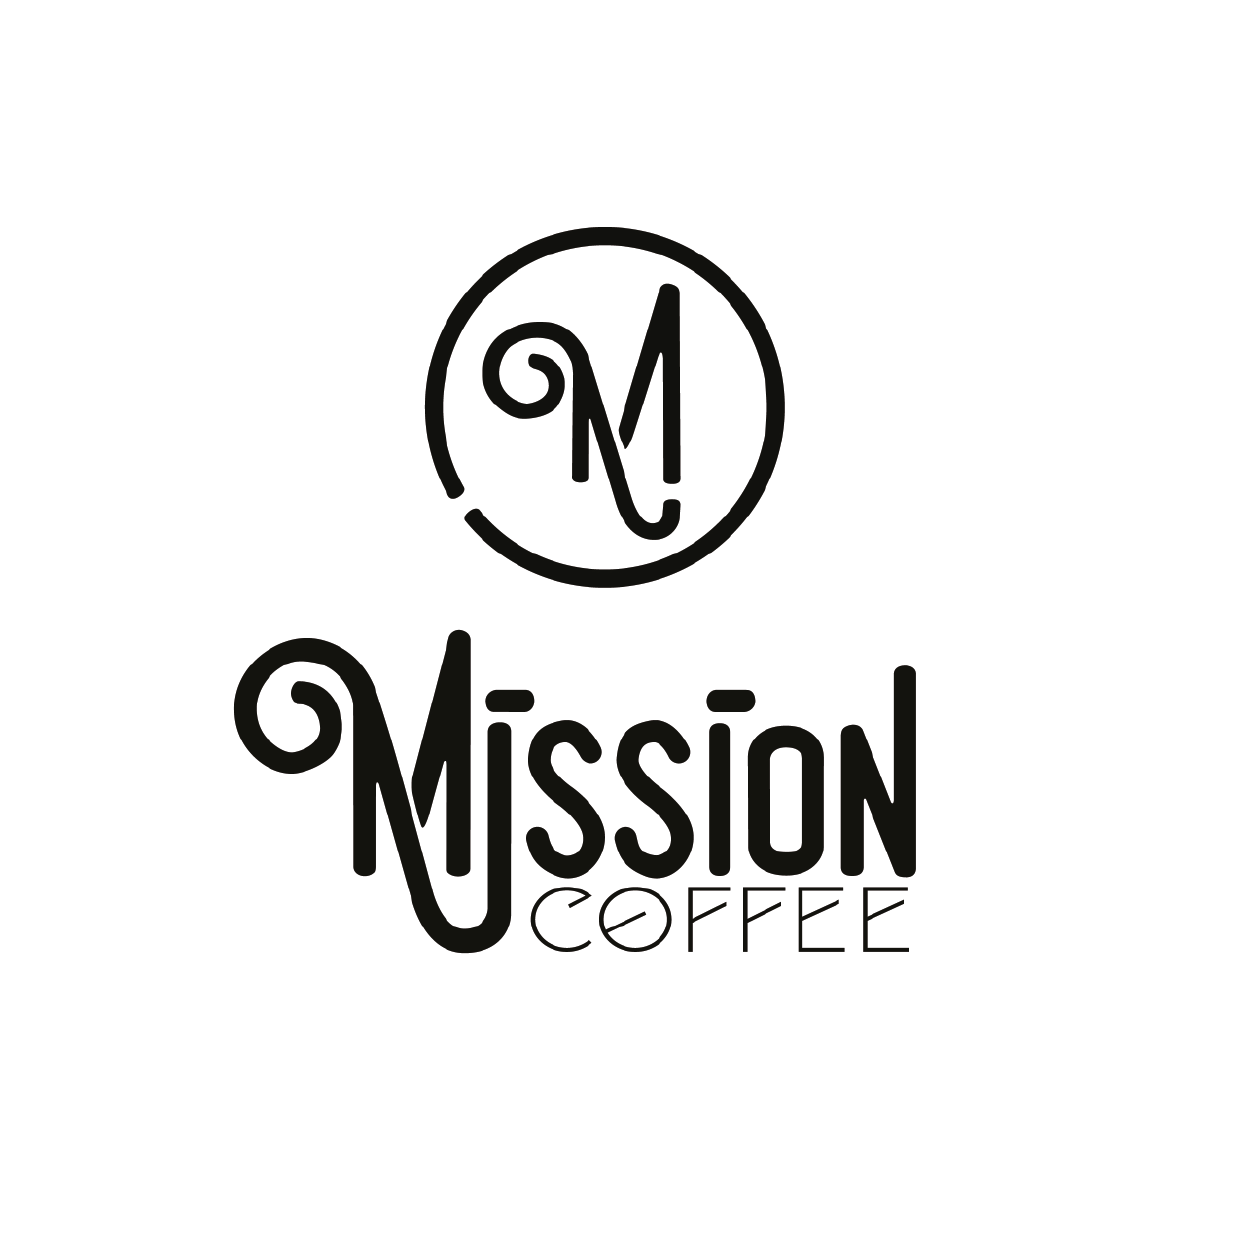 missioncoffee-01.png